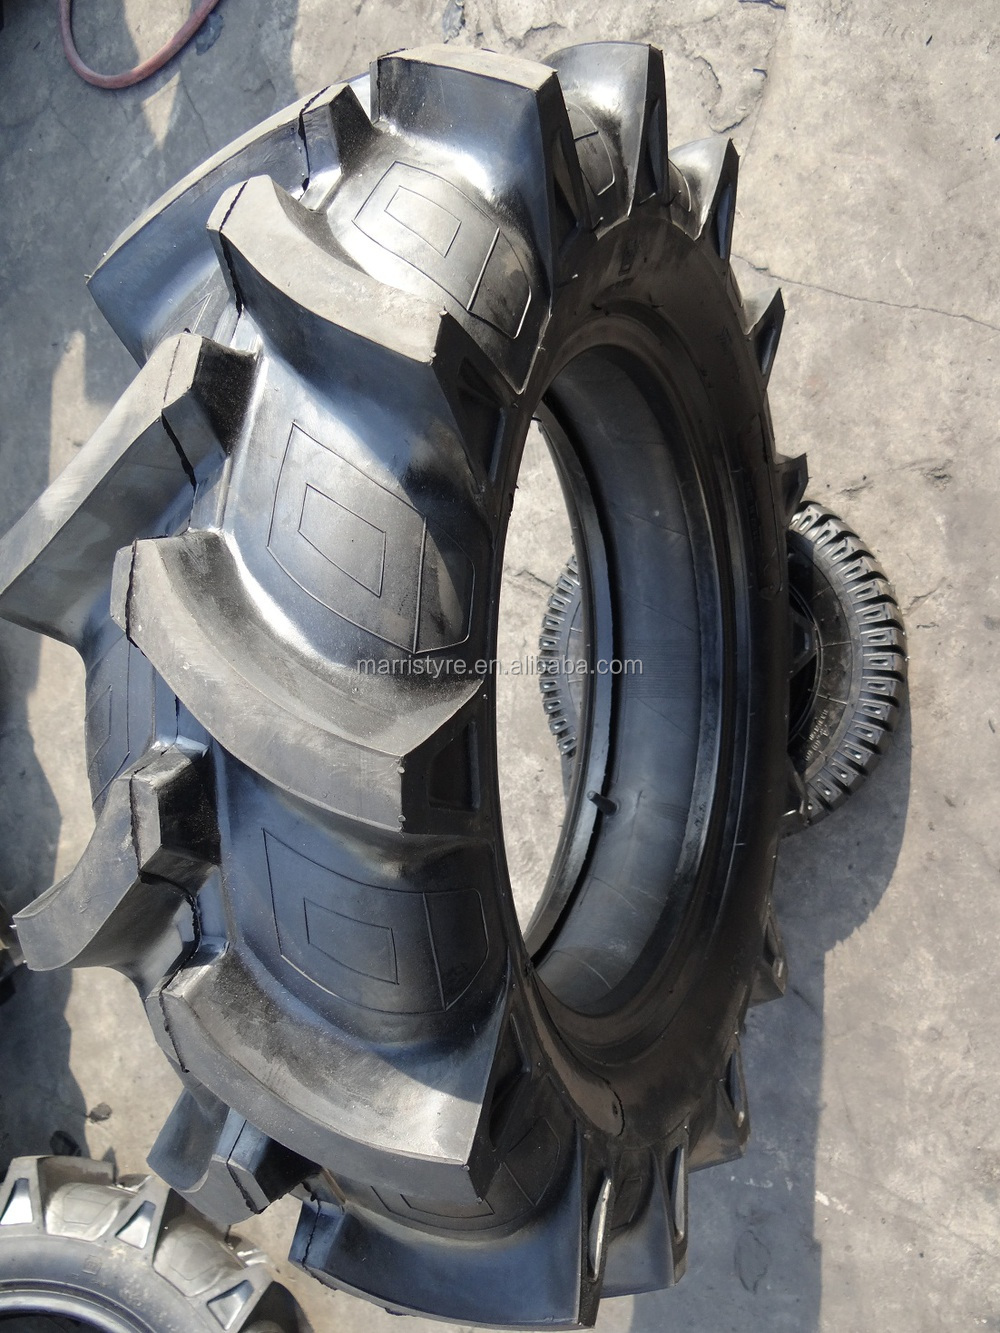 Japanese Tractor Tires : Thailand rubber material tractor tires buy